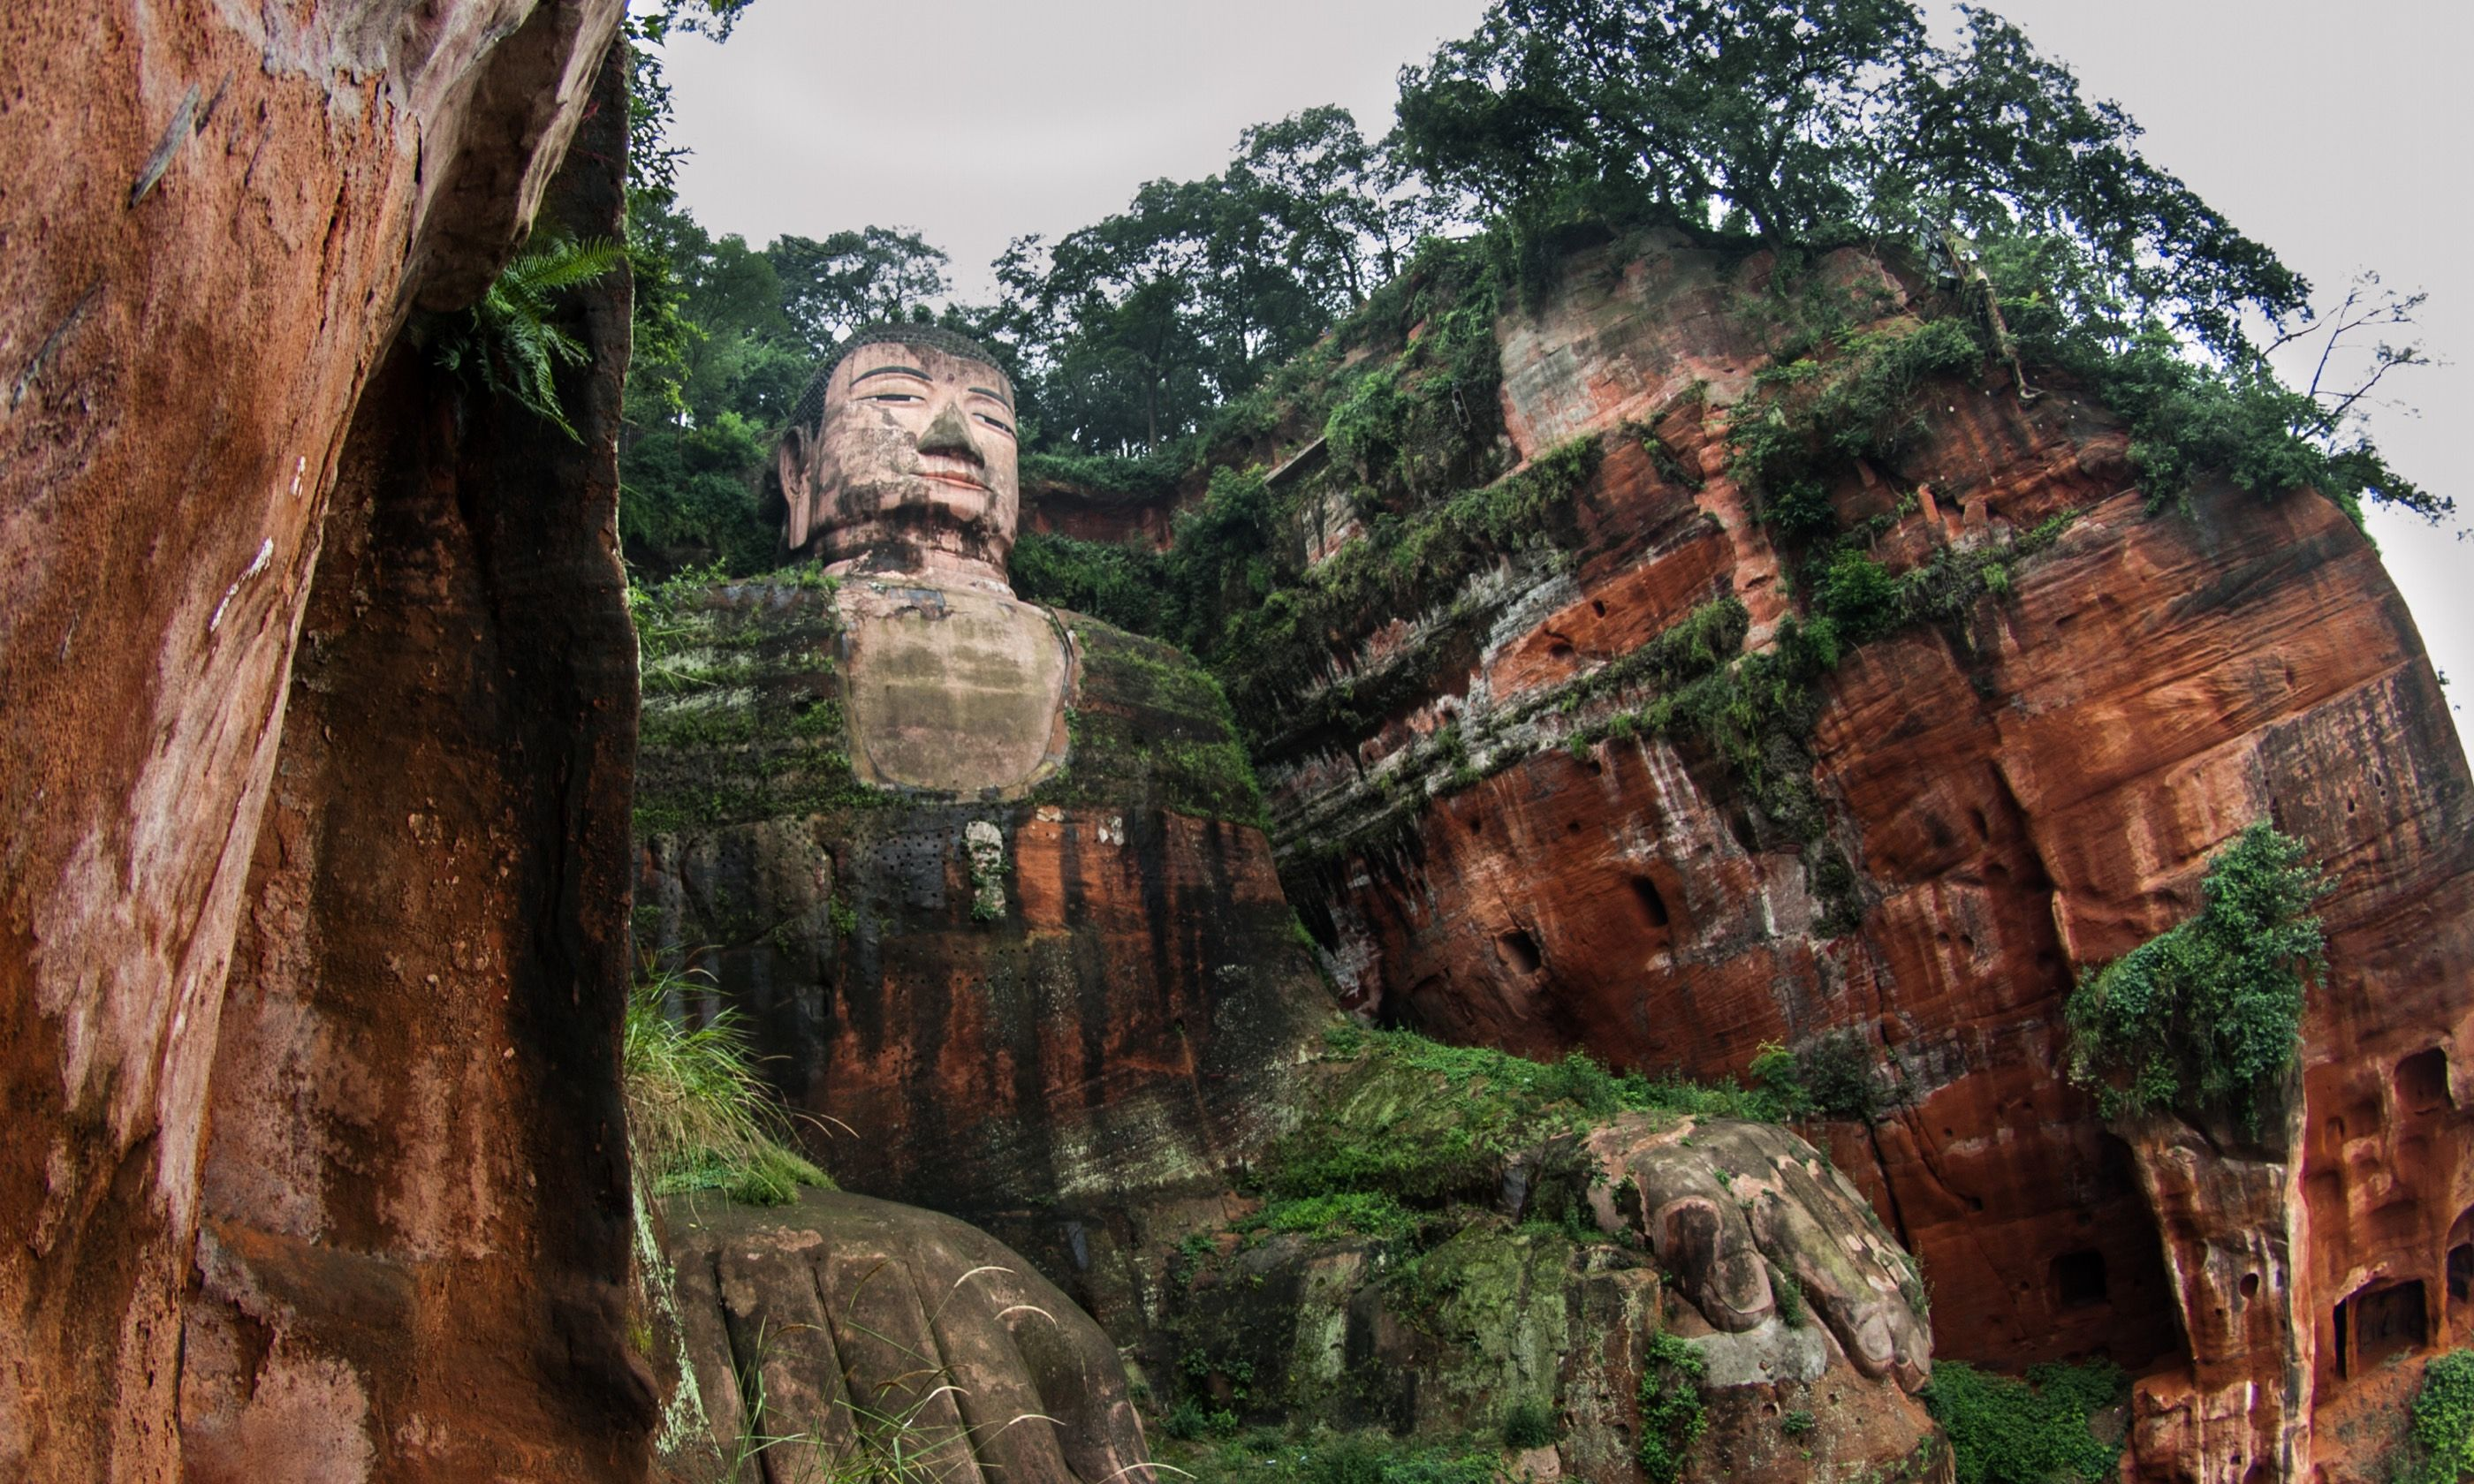 The Giant Buddha in Leshan (Dreamstime)